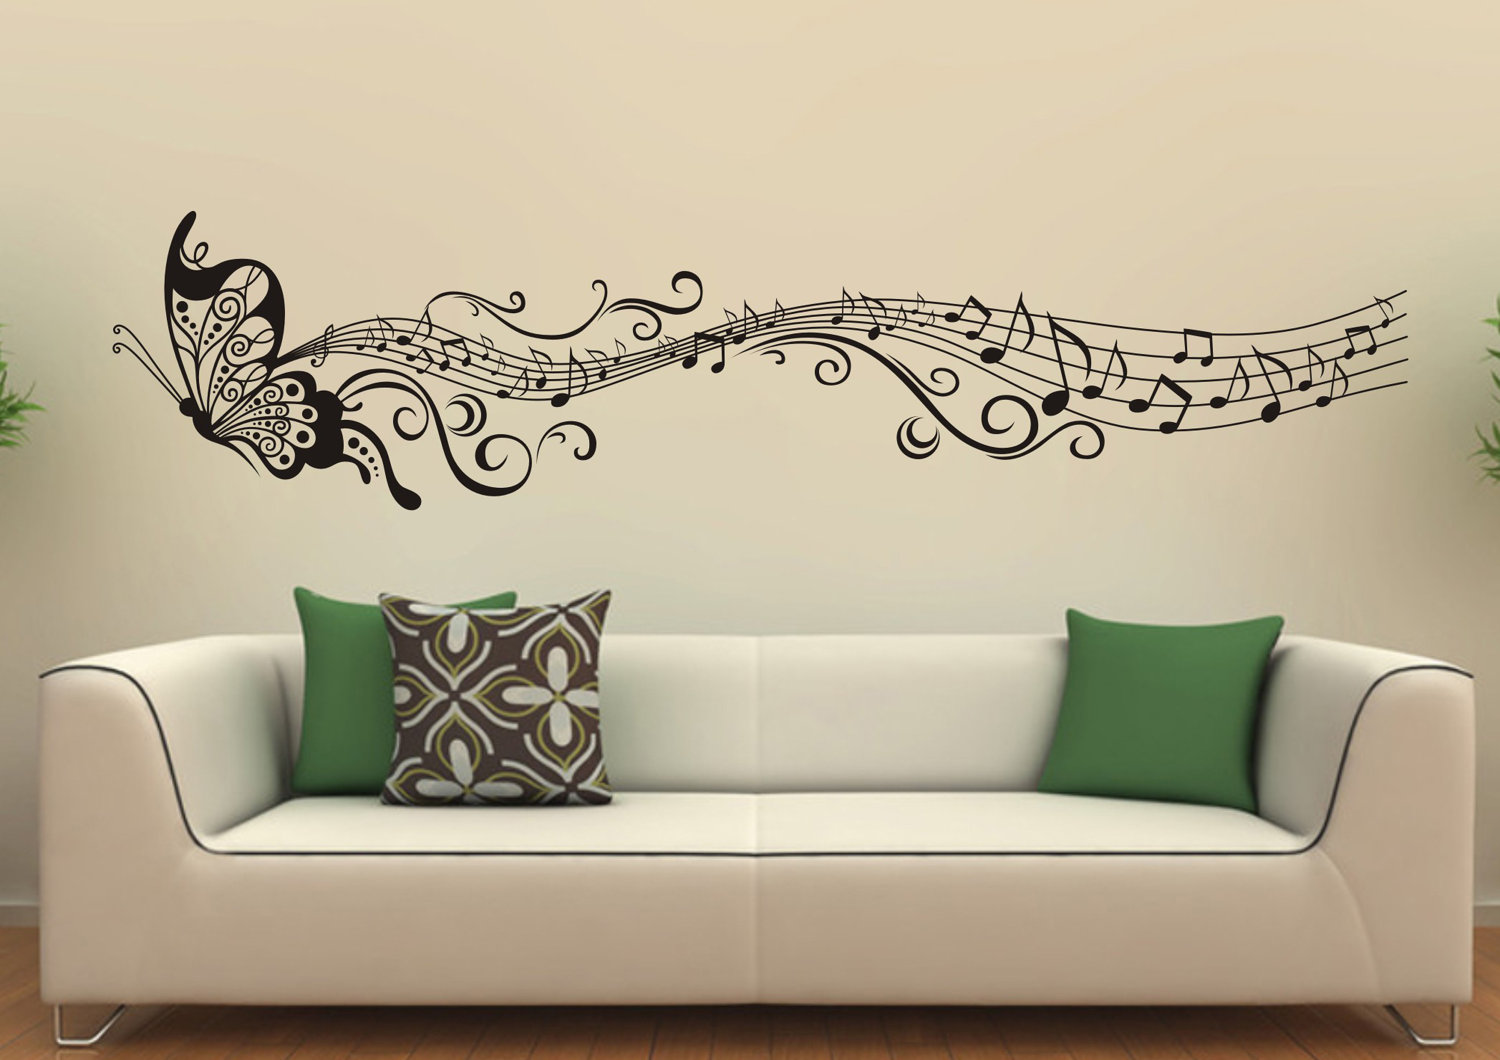 Make your home beautiful with unique wall decor for Wallpaper on walls home decor furnishings